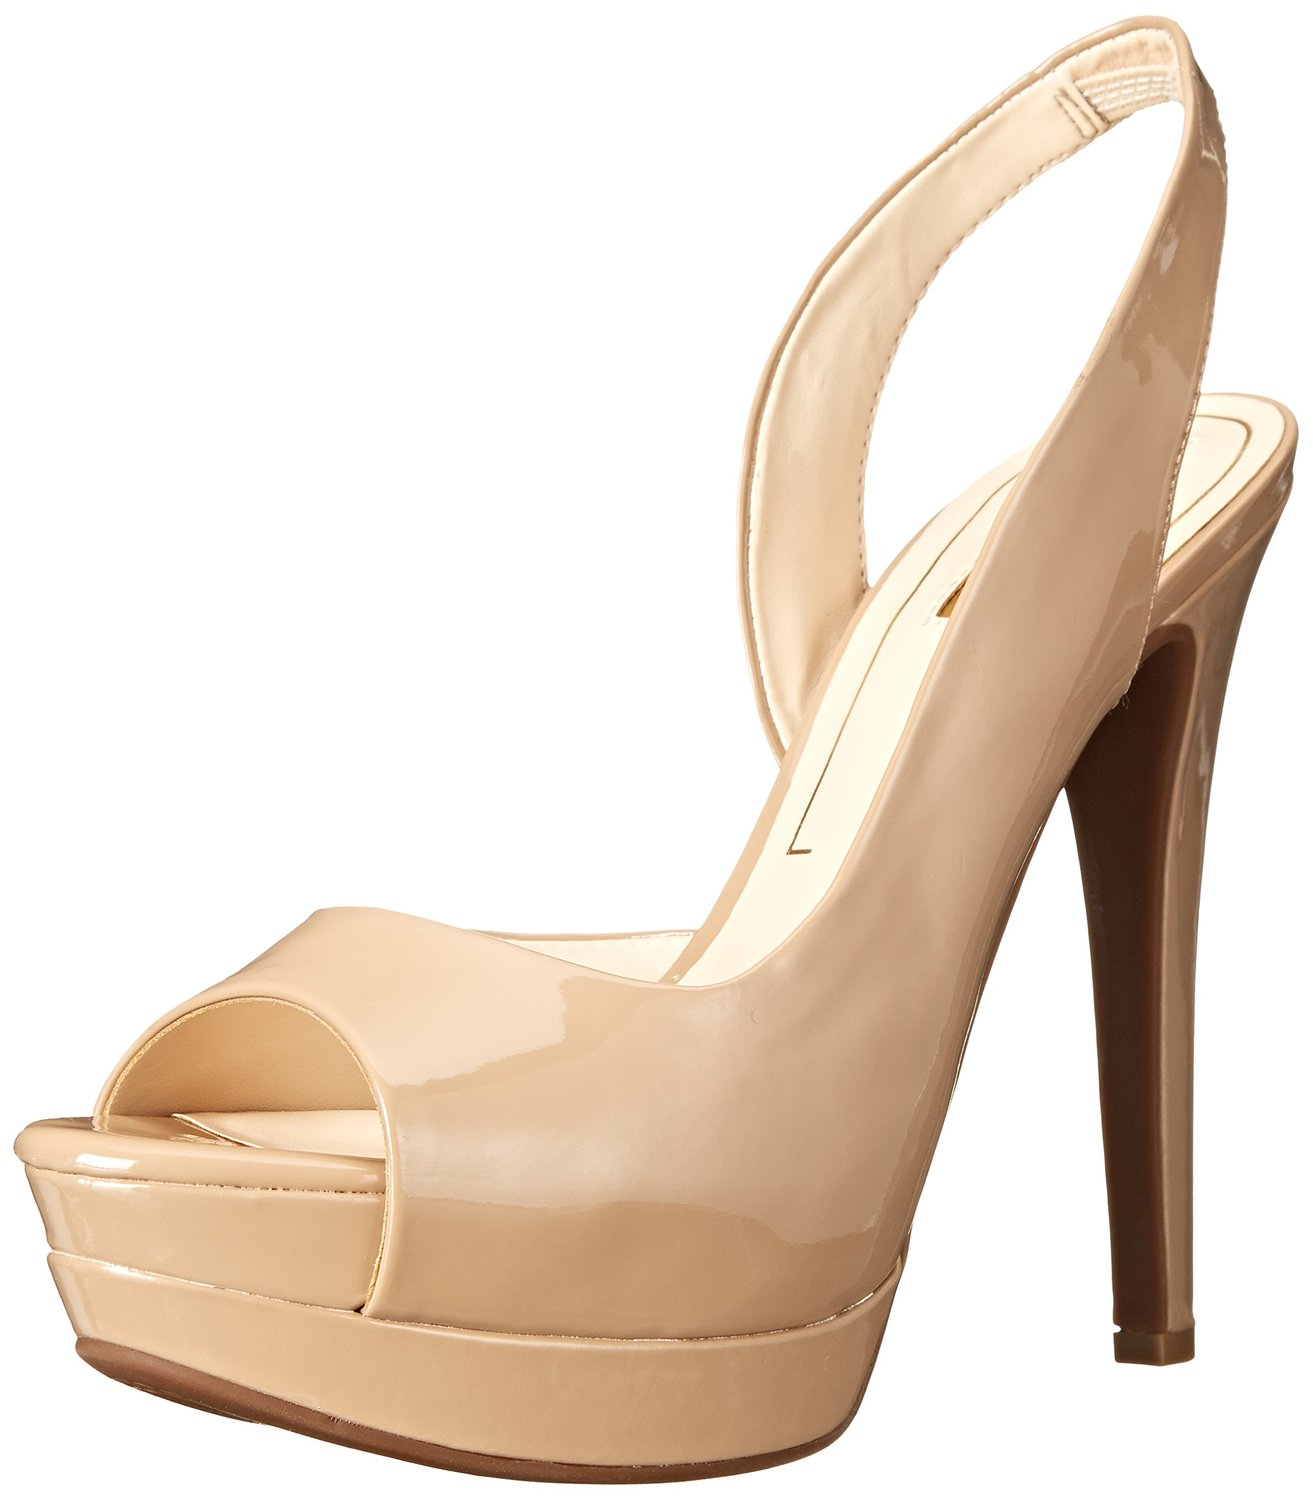 Nude # Pumps # Jessica Simpson # Lack # high Heels